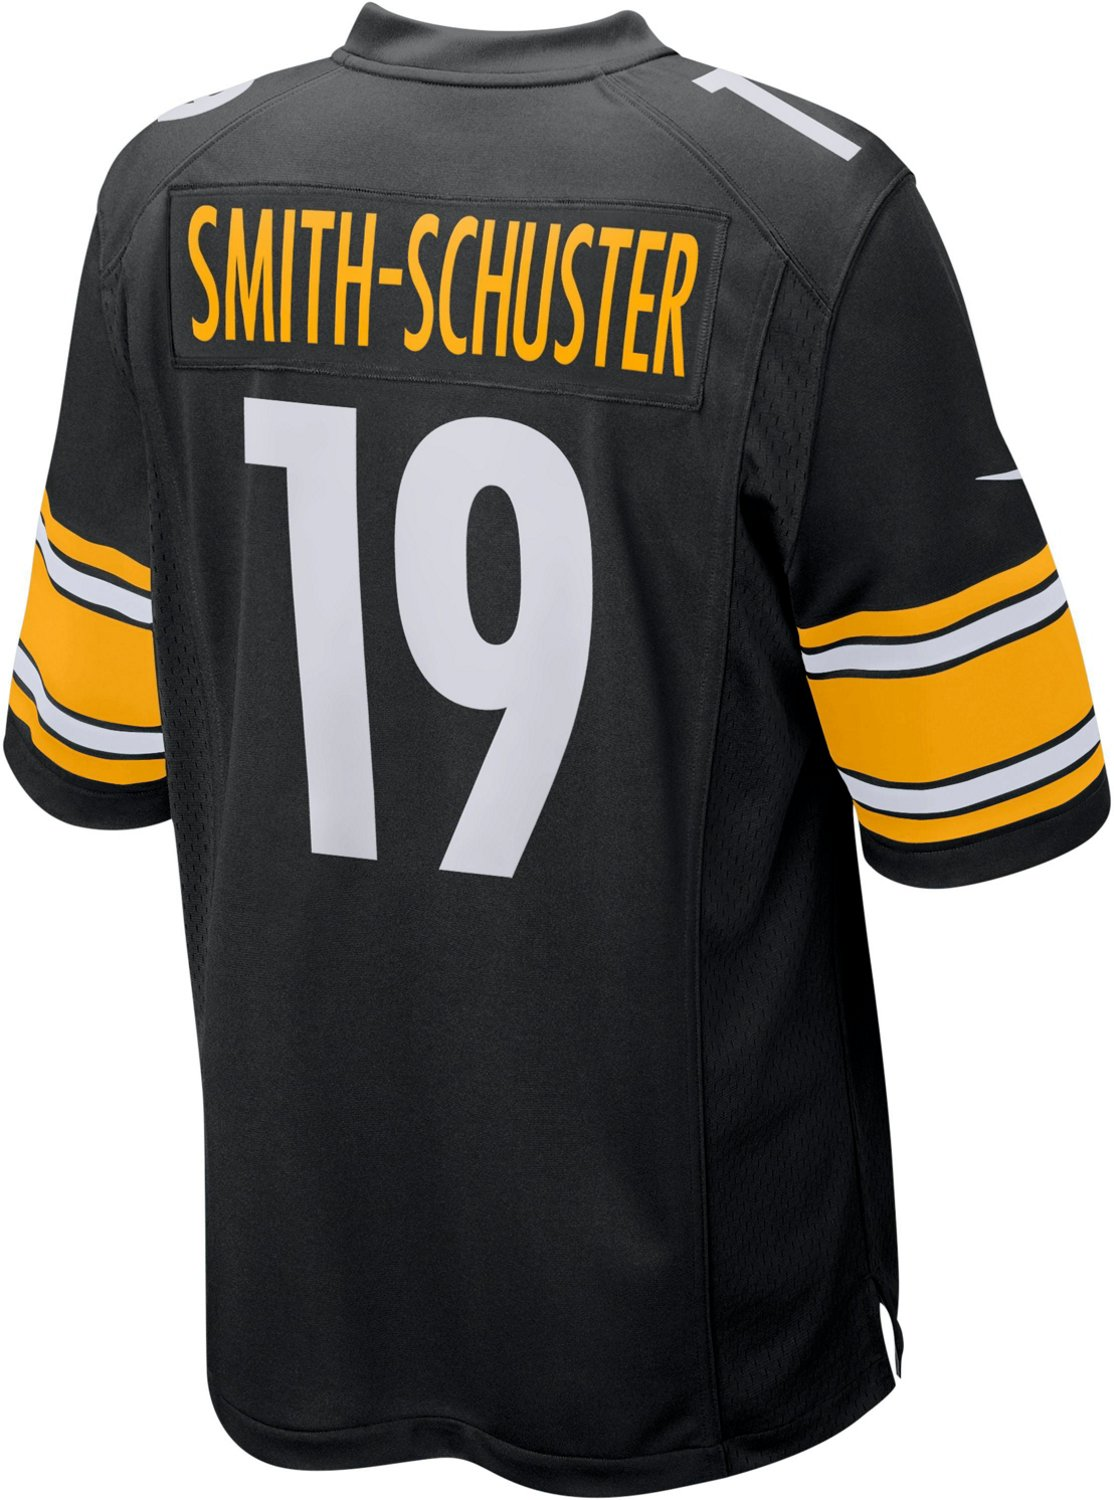 info for 76238 5e9b4 Nike Men's Pittsburgh Steelers JuJu Smith-Schuster 19 Game Jersey